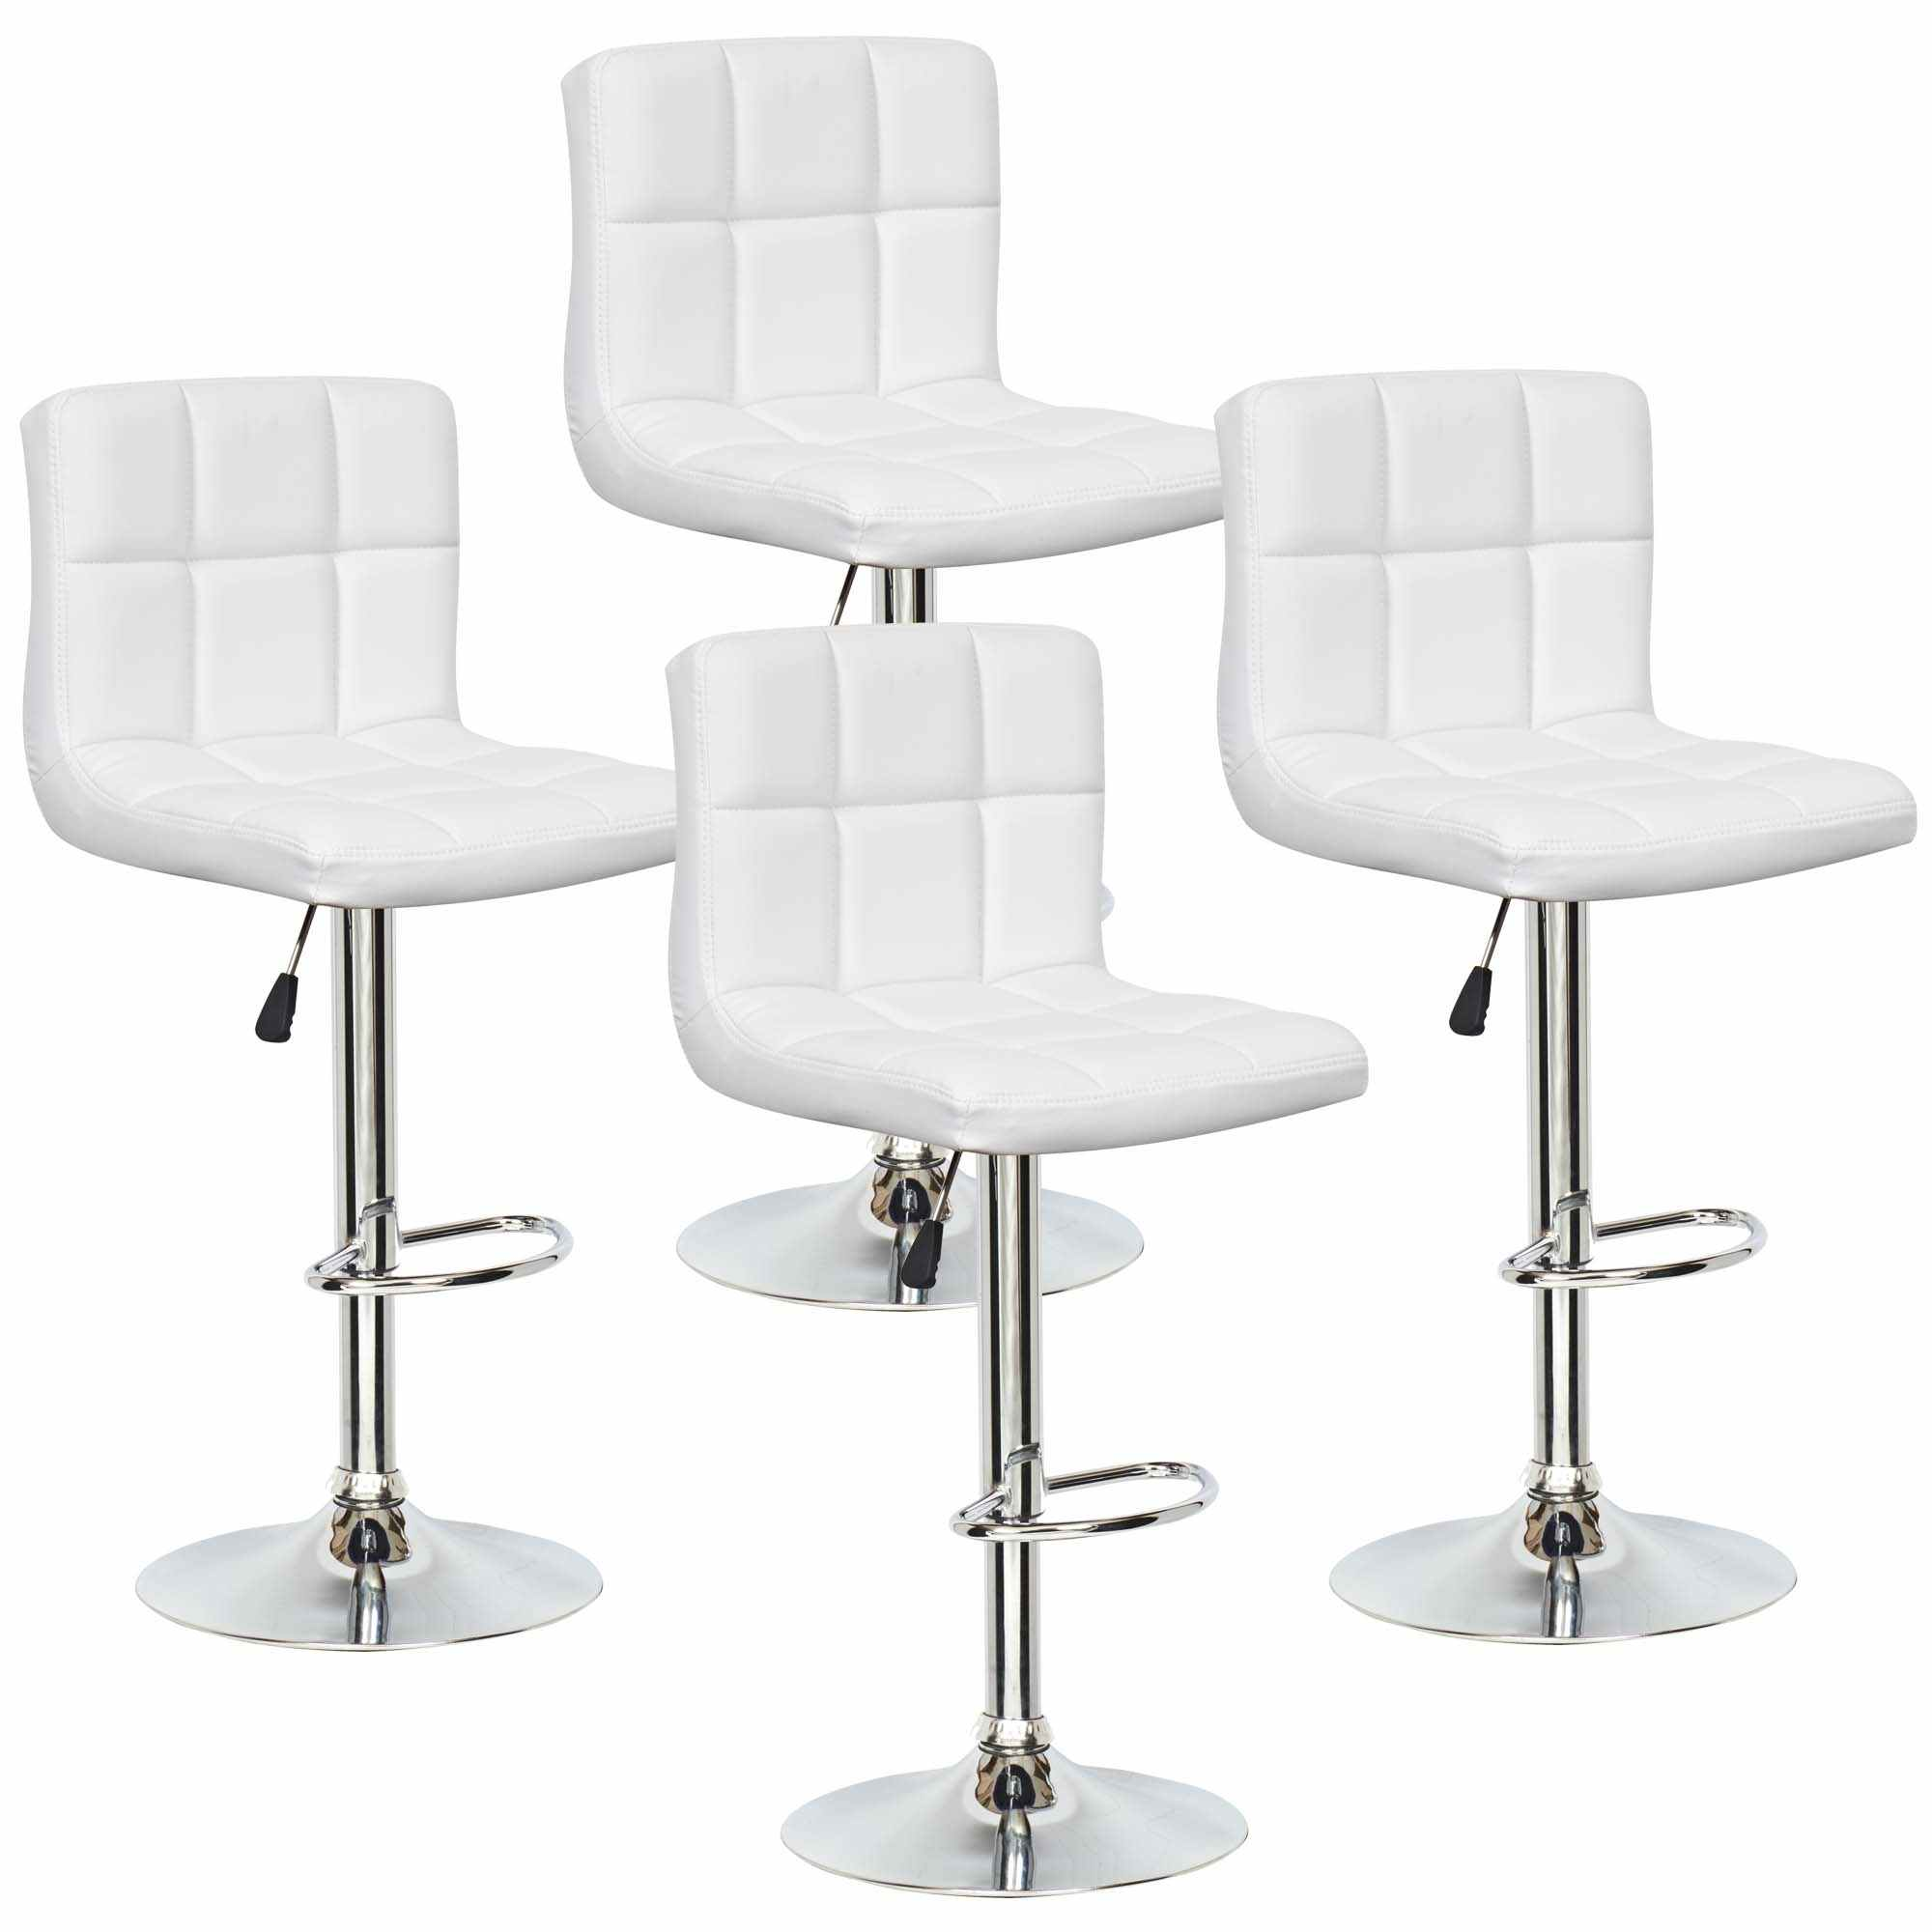 Deco in paris lot de 4 tabourets de bar blanc scalo scalo tab blanc 4 - Lot 4 tabouret de bar ...